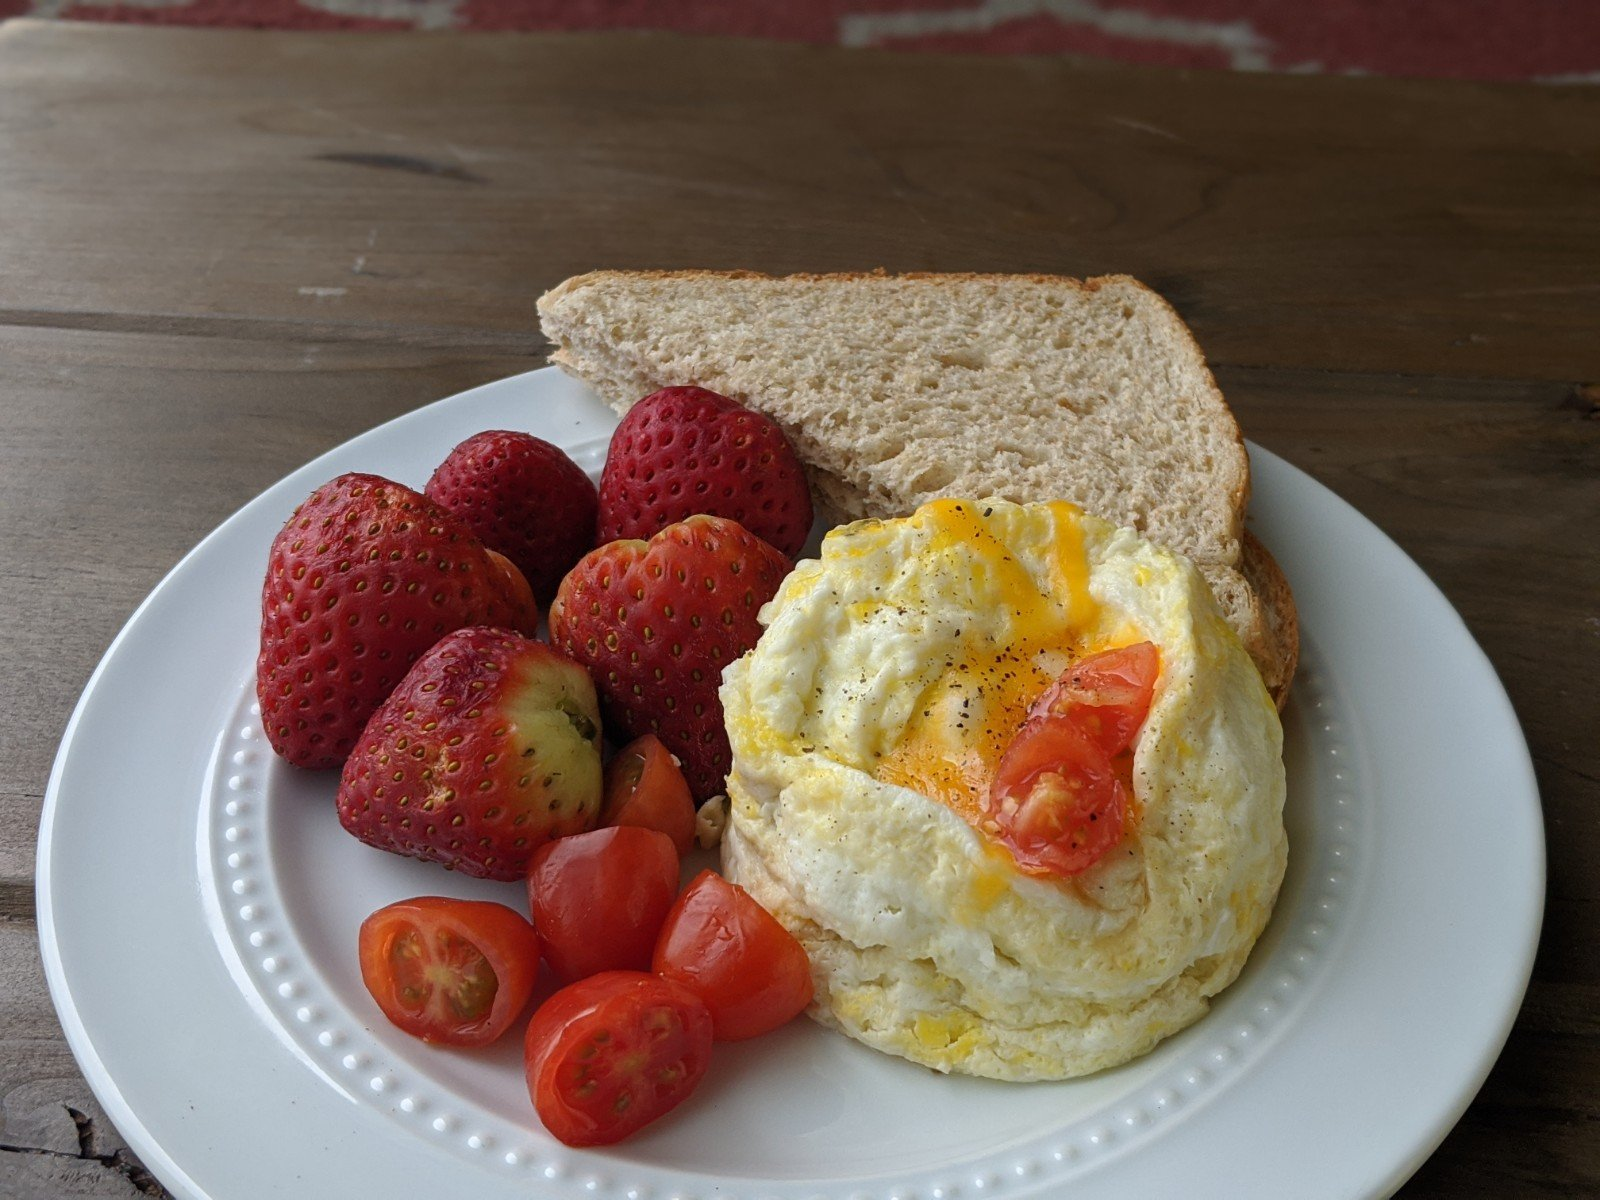 microwave eggs on plate with toast and berries